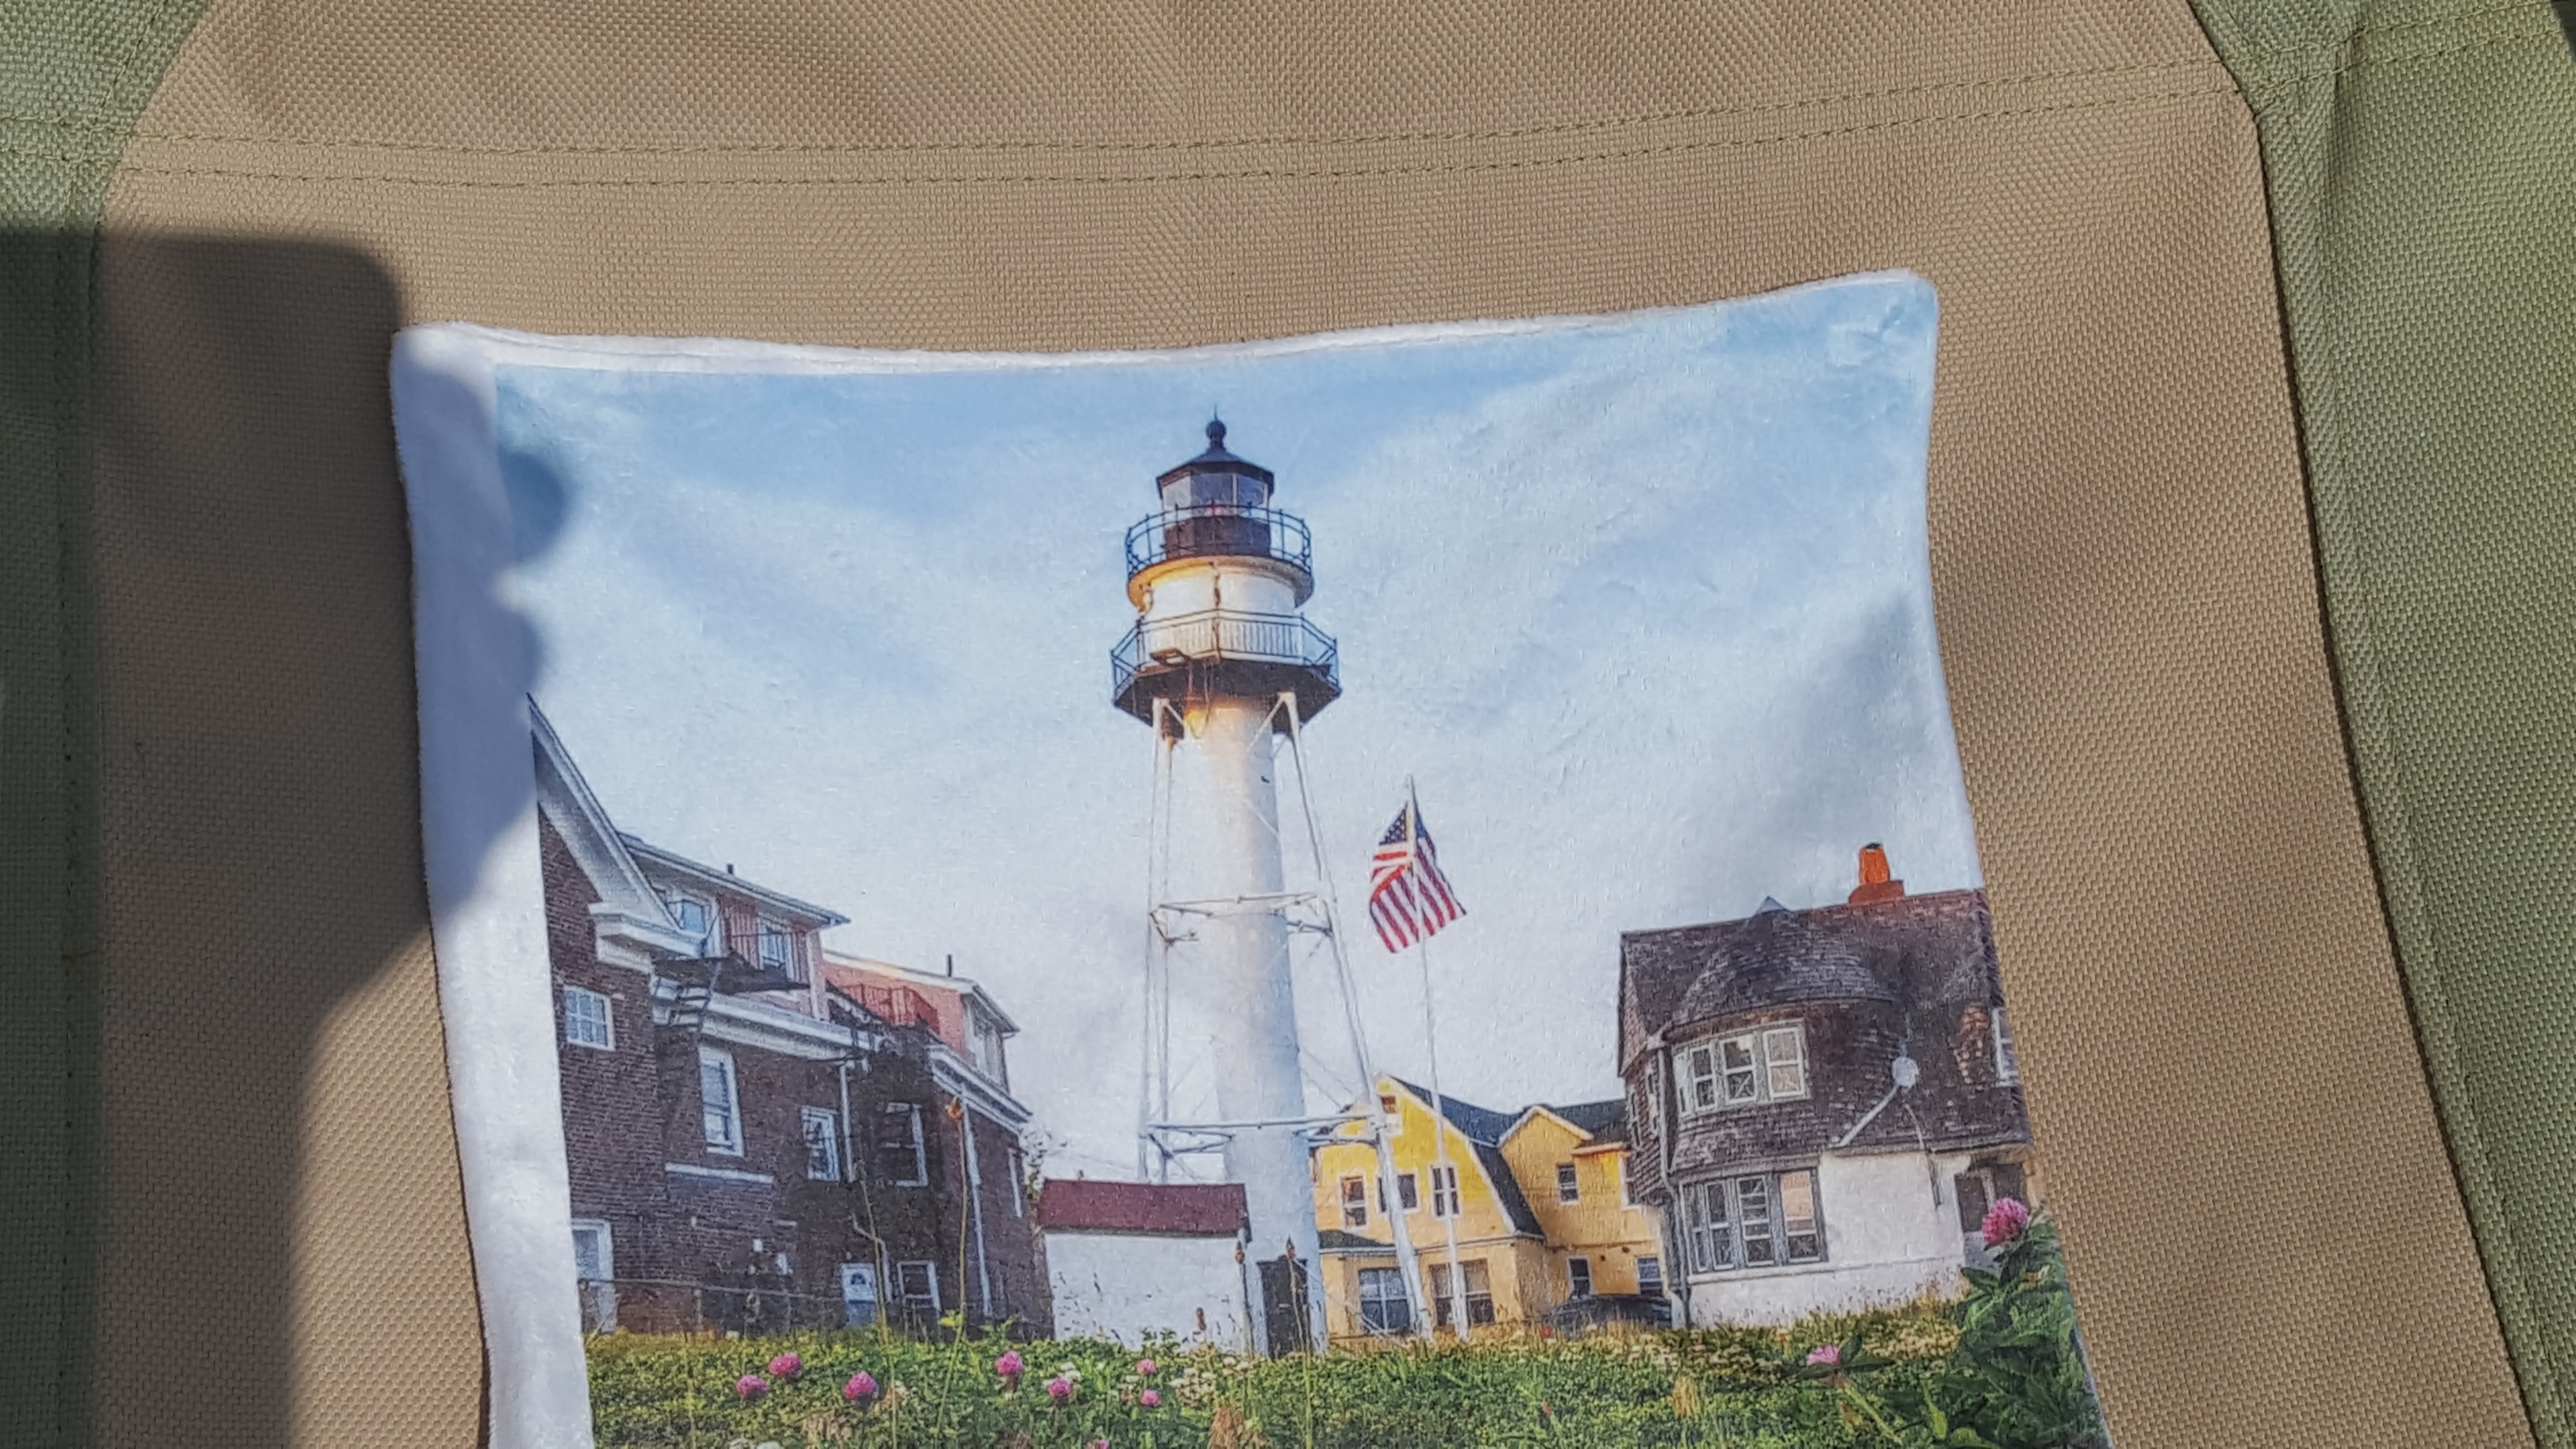 12 Inch Throw Pillow Covers : 12 inch Velvet Sublimation Throw Pillow Cover - Coney Island Transfer